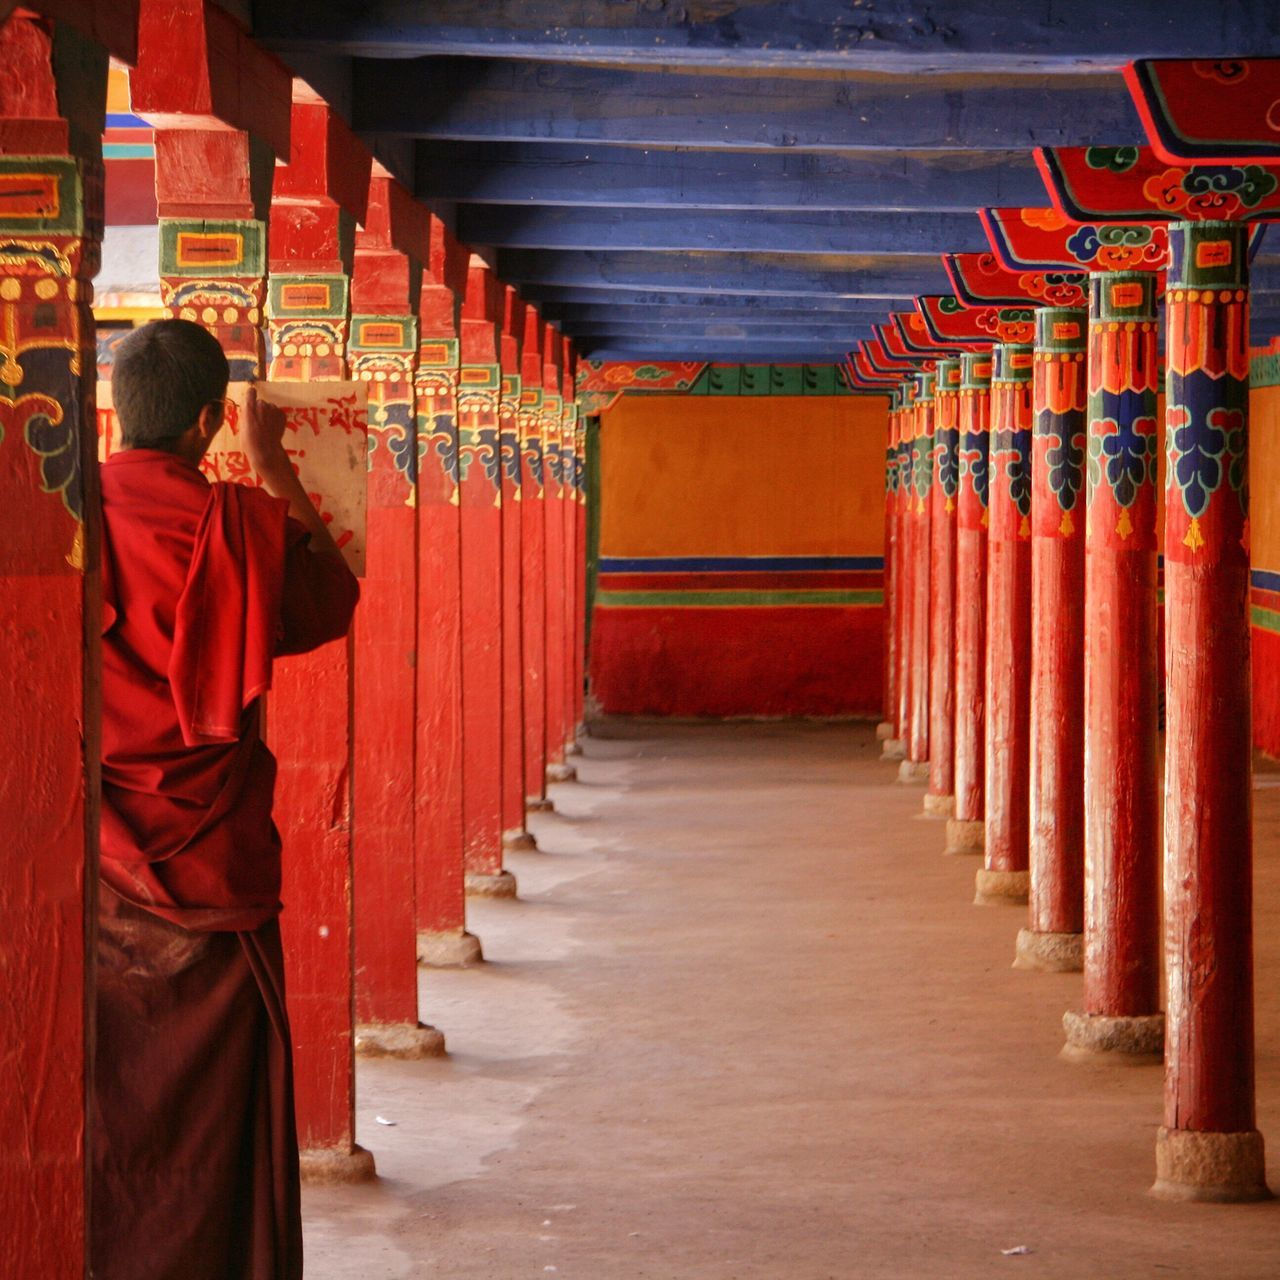 Red Rear View Place Of Worship Religion Full Length Cultures One Person Spirituality Indoors  One Man Only Traditional Clothing Men People Adults Only Adult Only Men Day Tibet Monk  Buddhism Buddhist Monks